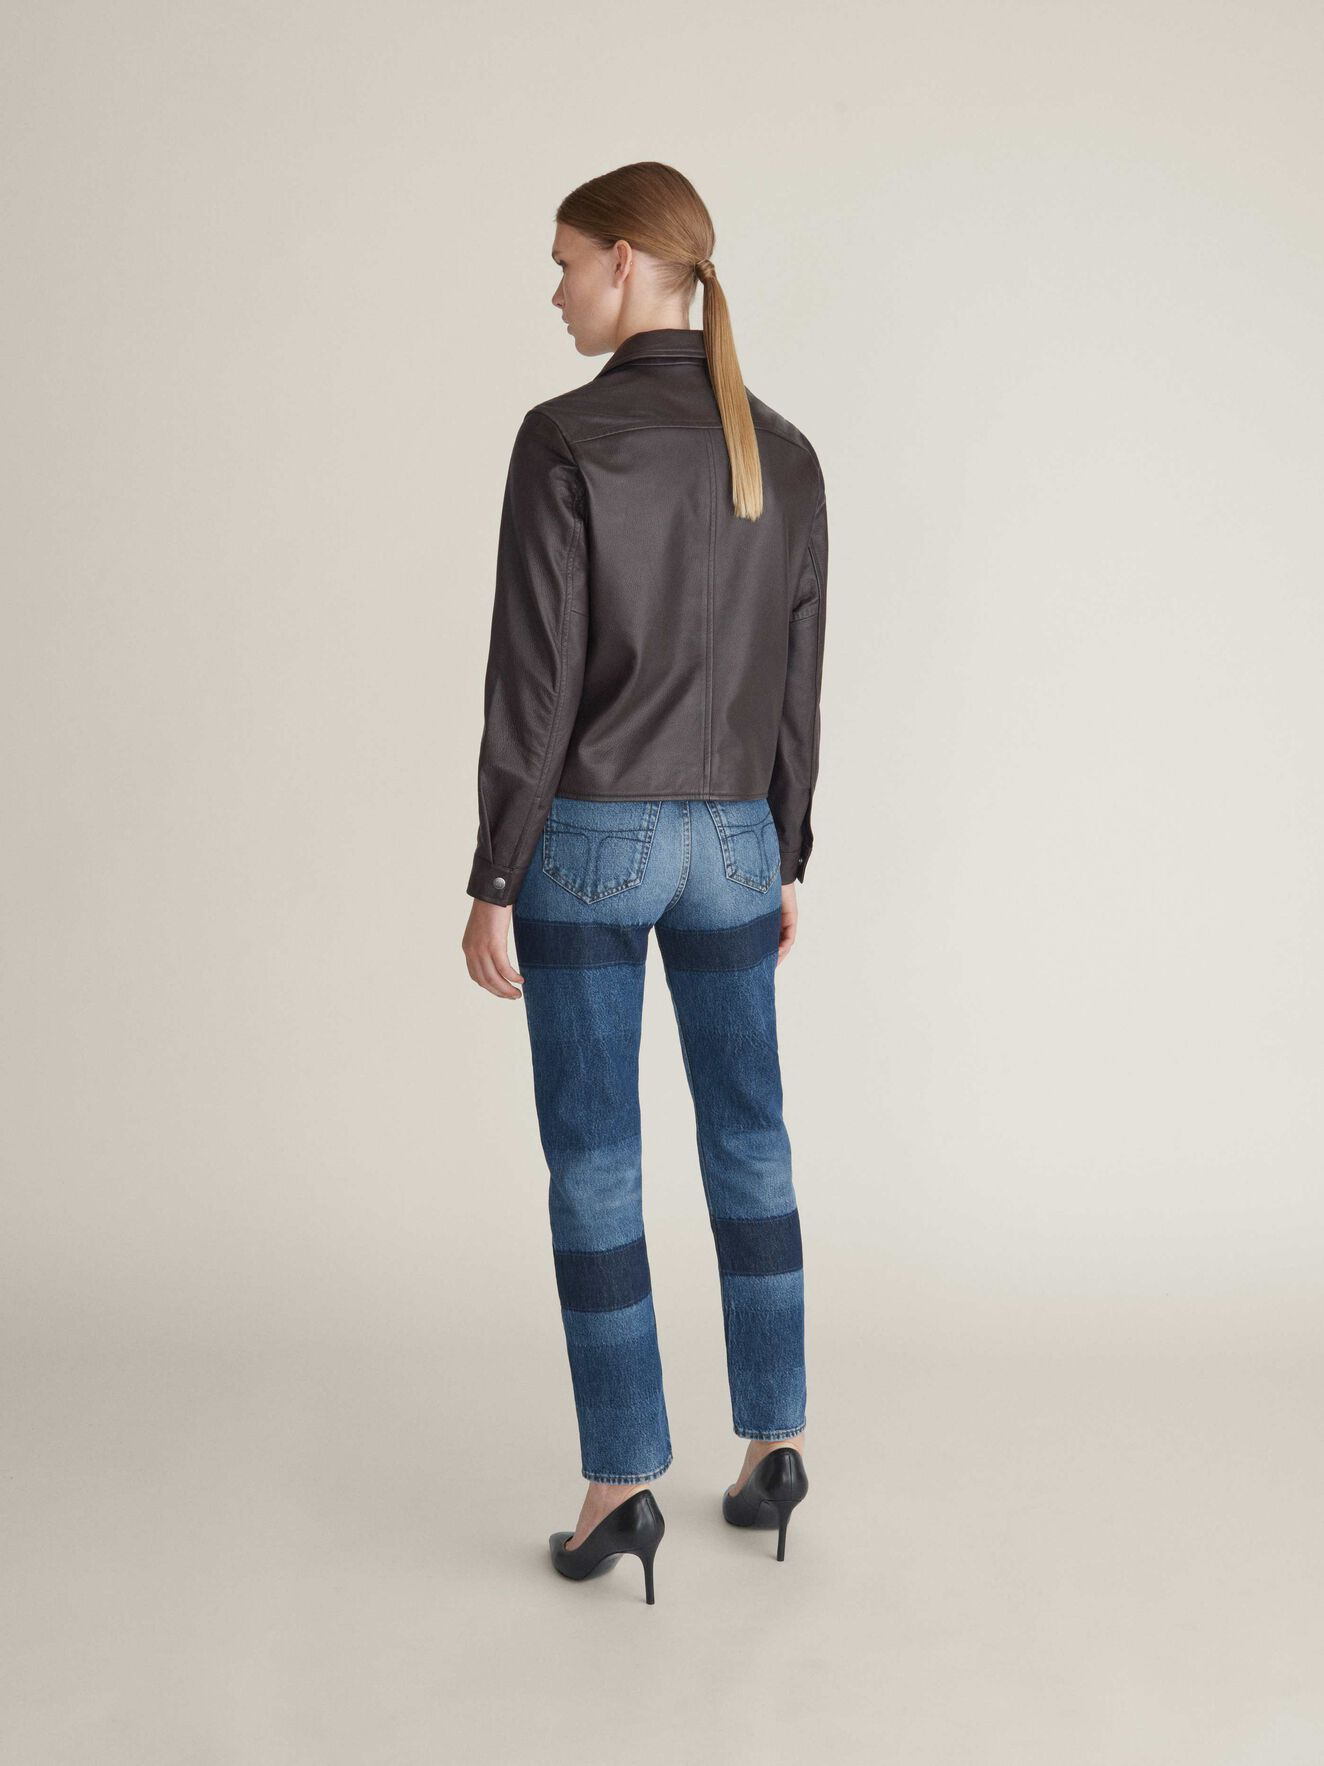 Saidy Jacket in Chocolate Torte from Tiger of Sweden